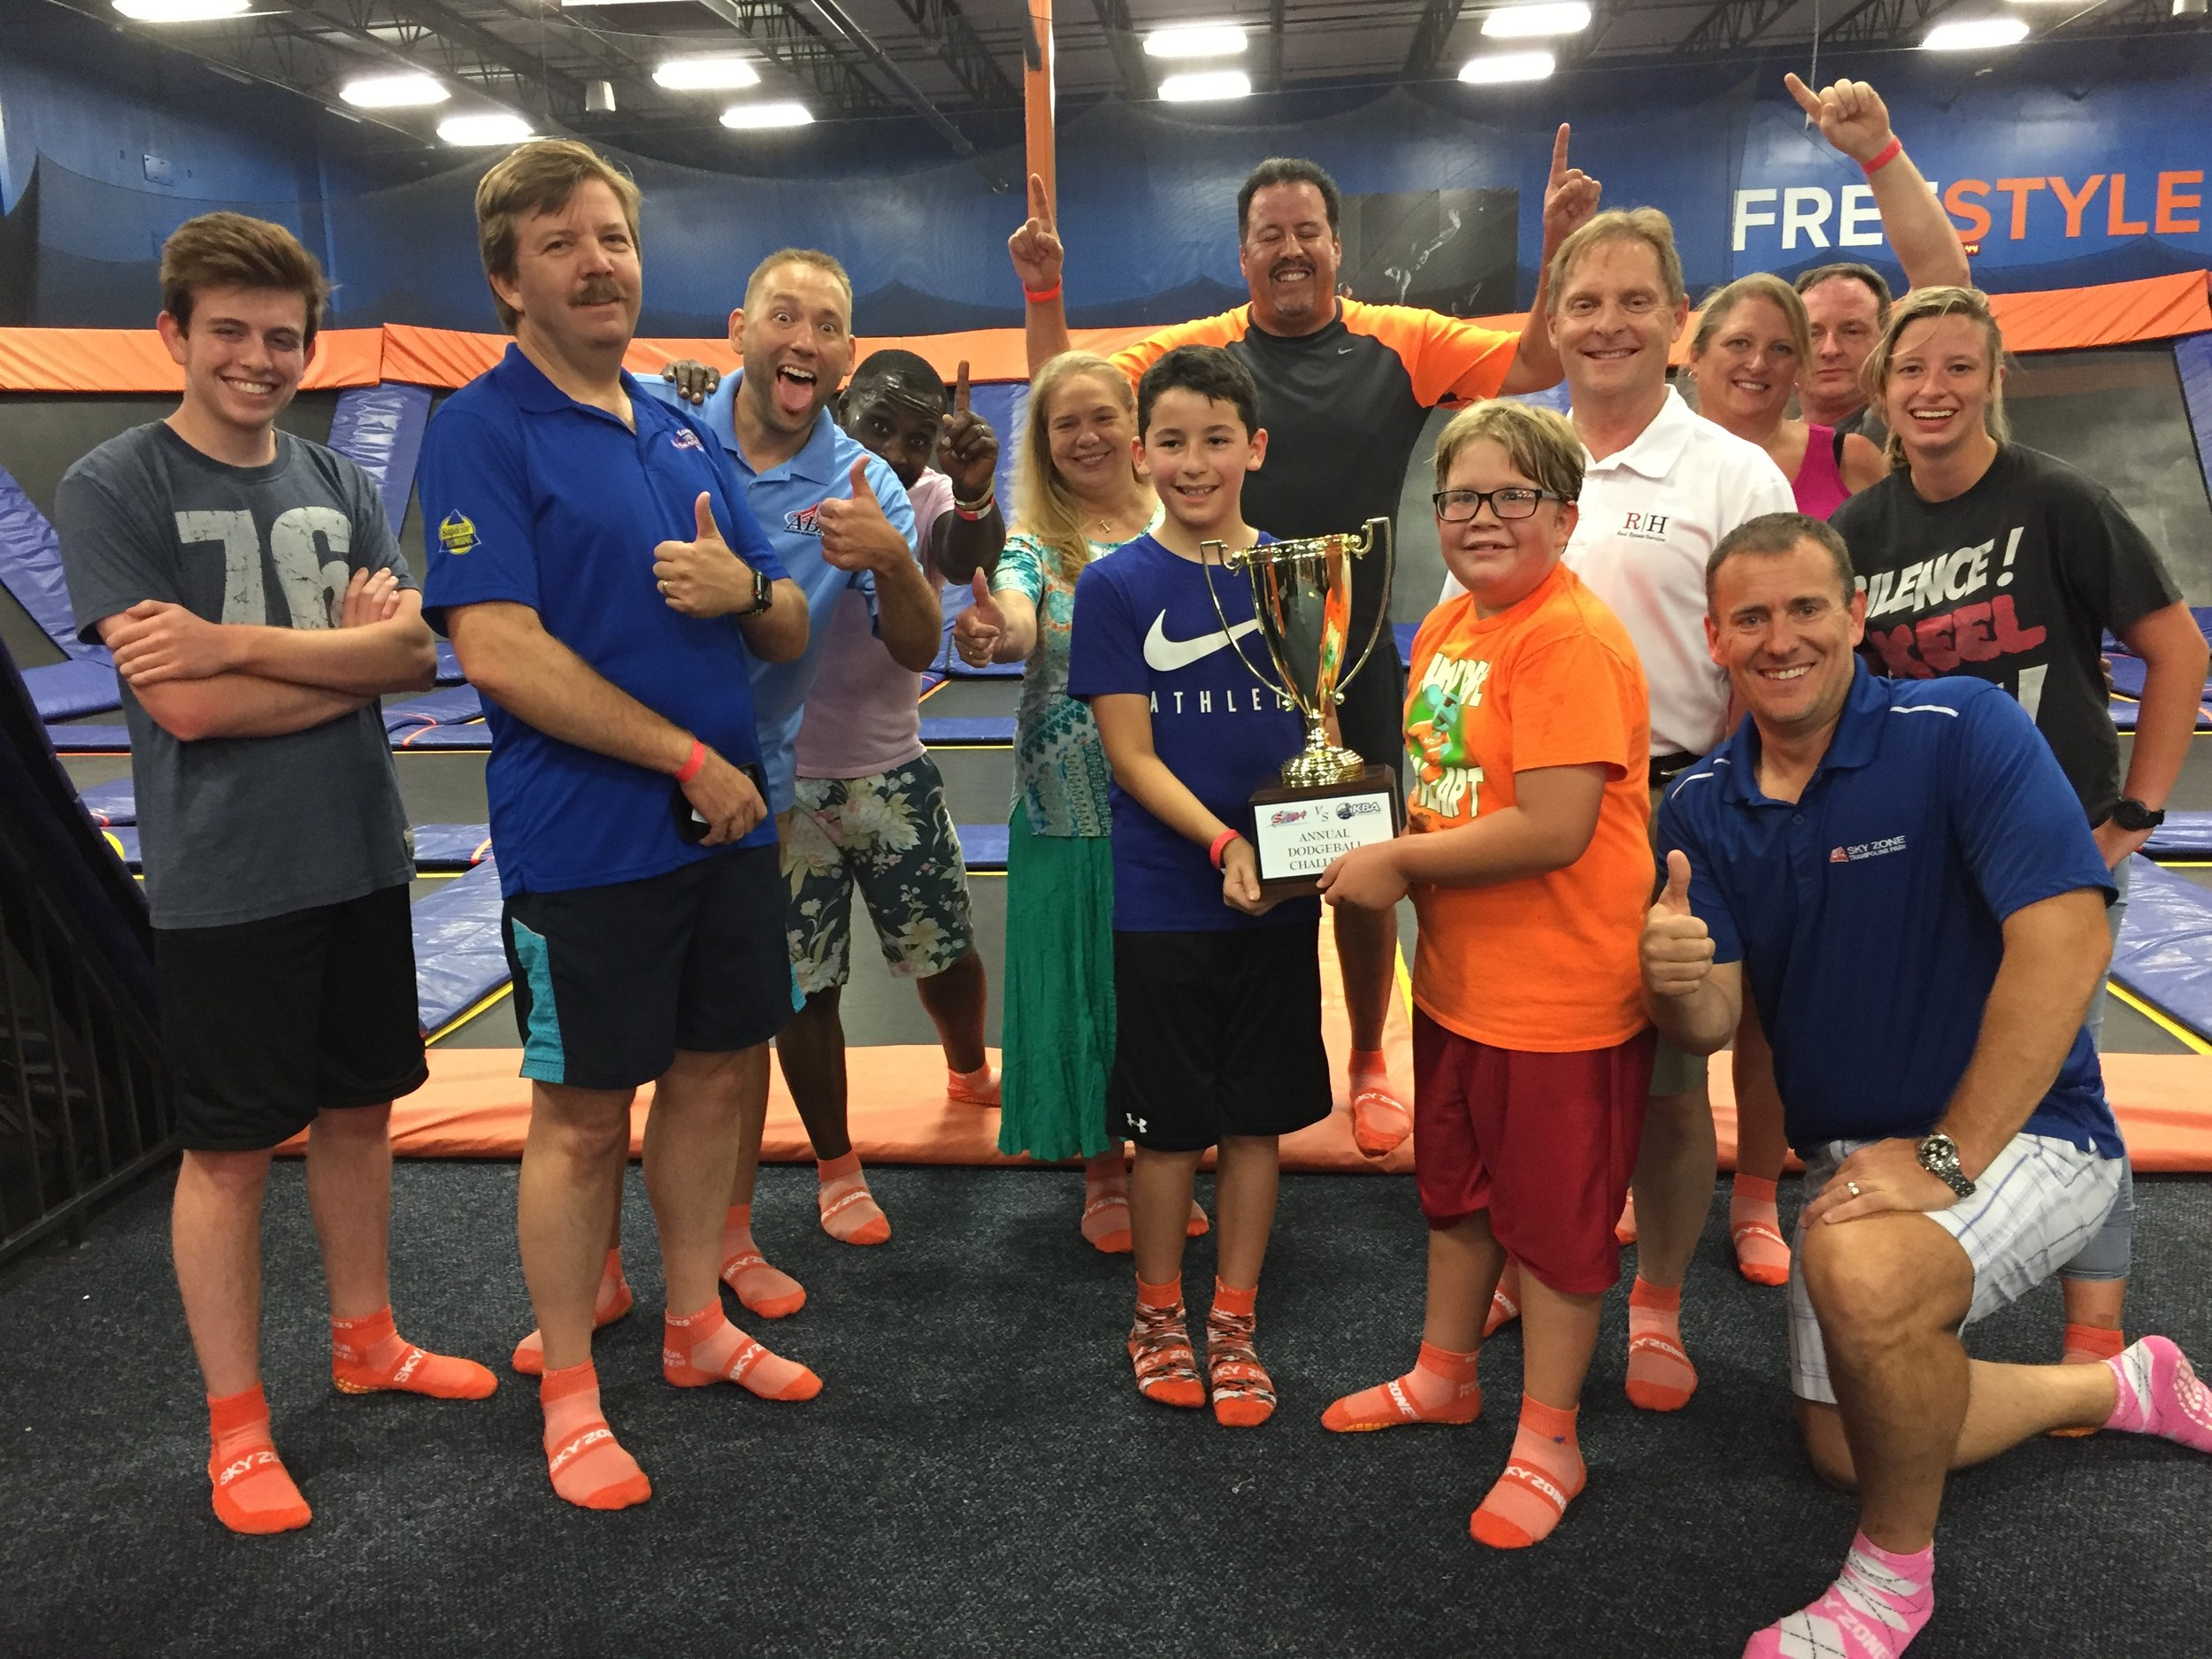 """2018 President David McClanahan: """"We had a special Alive After Five in June as well. We hosted our friends at the Kennesaw Business Association at the second annual ABA-KBA Dodgeball game at Skyzone trampoline park. After a hard-fought battle, ABA was able to claim victory. Not bragging. (…well maybe just a little J) More importantly, a great time was had by all. We always enjoy networking and doing business with our amazing friends and neighbors in Kennesaw."""""""